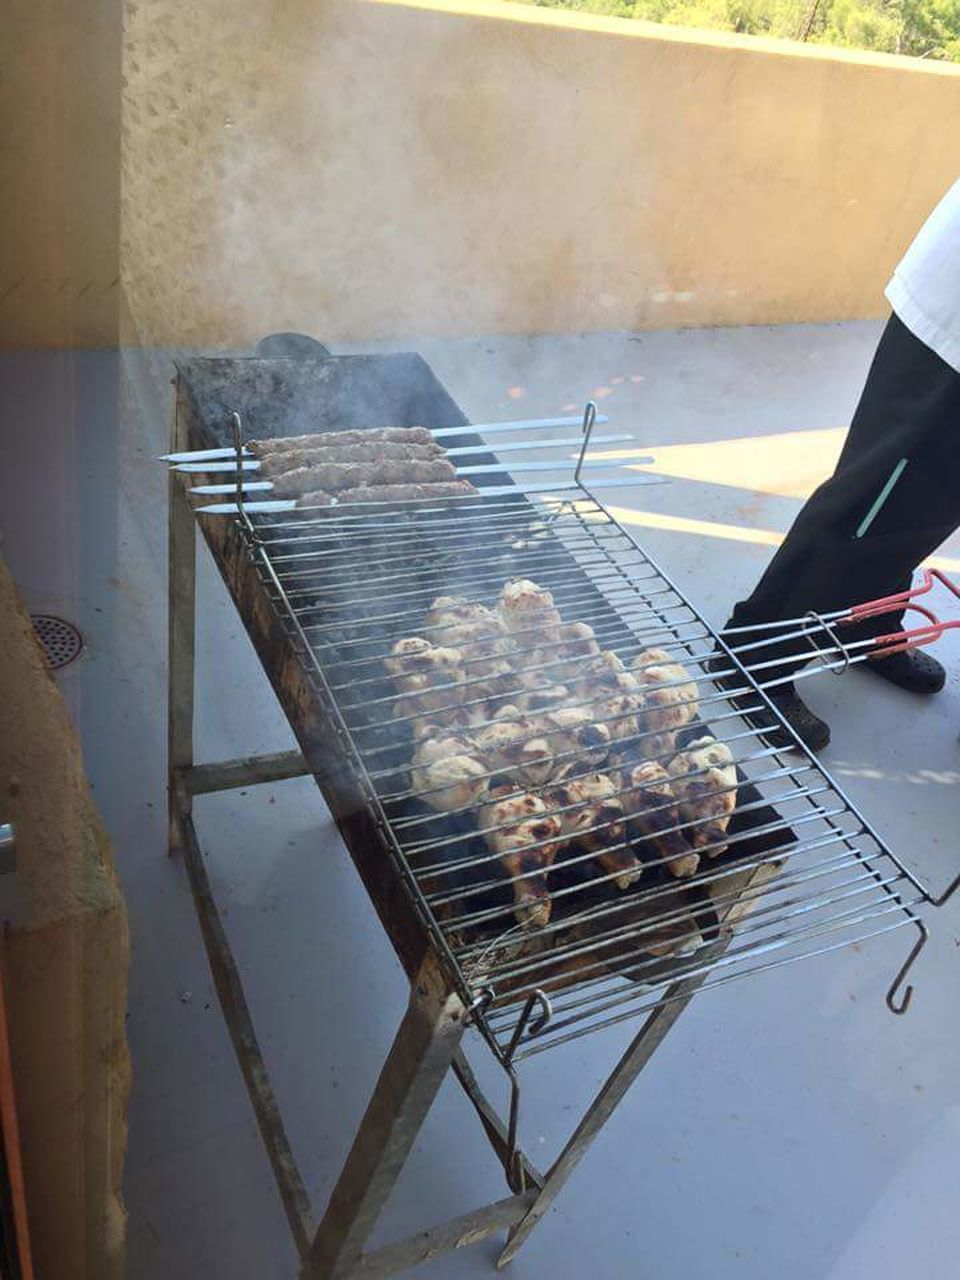 barbecue grill, barbecue, grilled, preparation, food and drink, food, heat - temperature, smoke - physical structure, meat, preparing food, roasted, day, one person, real people, outdoors, freshness, metal grate, serving tongs, people